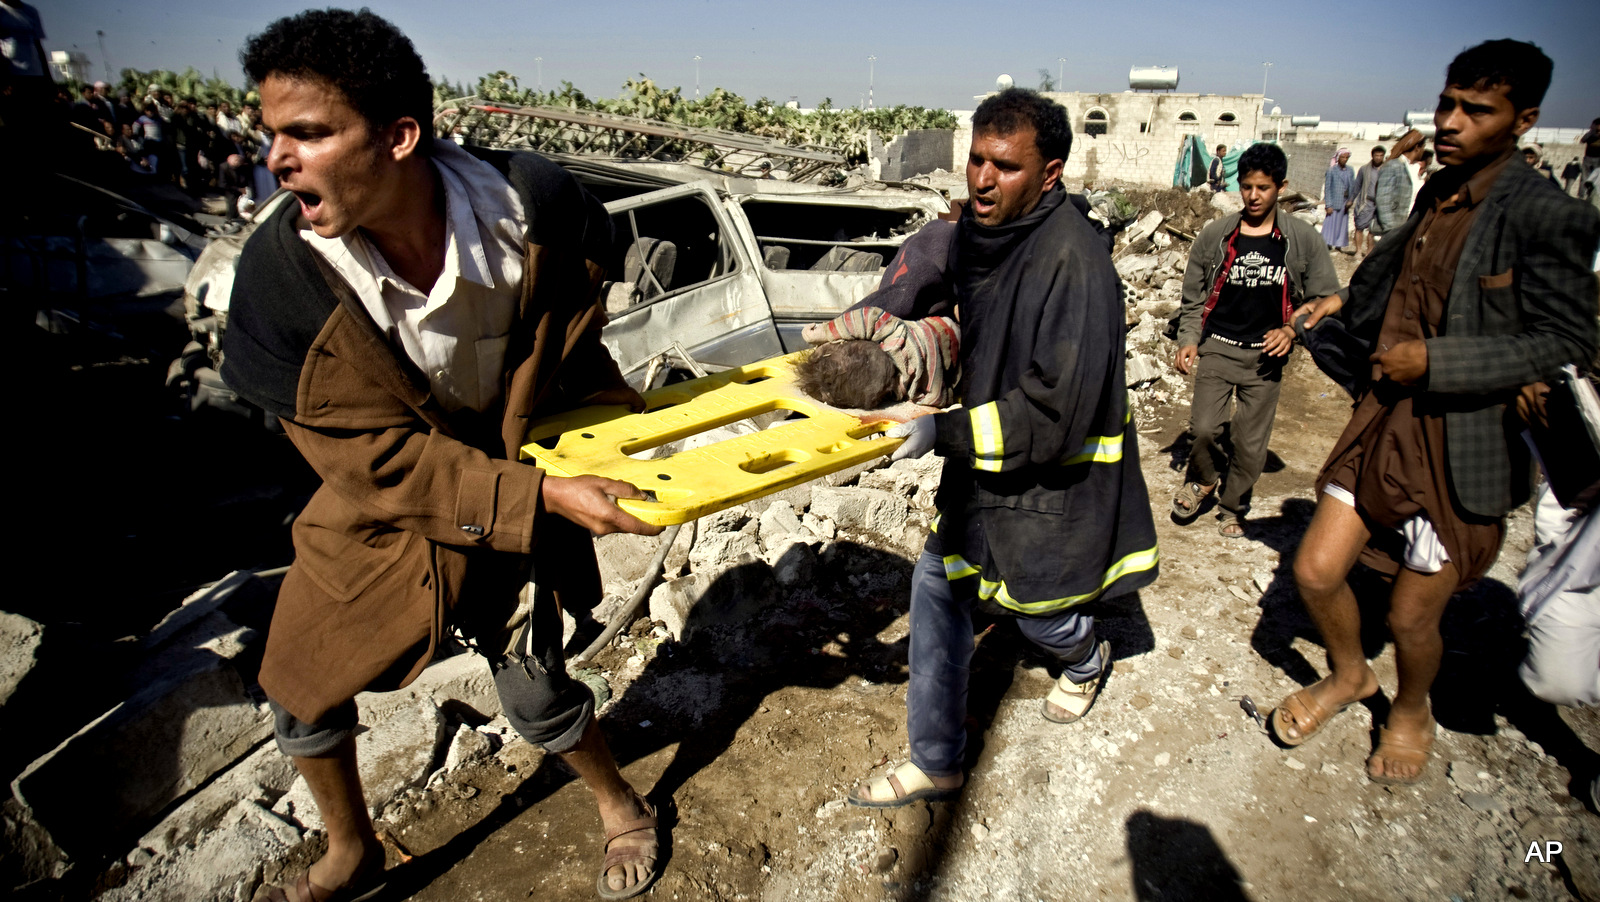 YemenPeople carry the body of a child they uncovered from under the rubble of houses destroyed by Saudi airstrikes near Sanaa Airport, Yemen, Thursday, March 26, 2015. Saudi Arabia launched airstrikes Thursday targeting military installations in Yemen held by Shiite rebels who were taking over a key port city in the country's south and had driven the embattled president to flee by sea, security officials said.